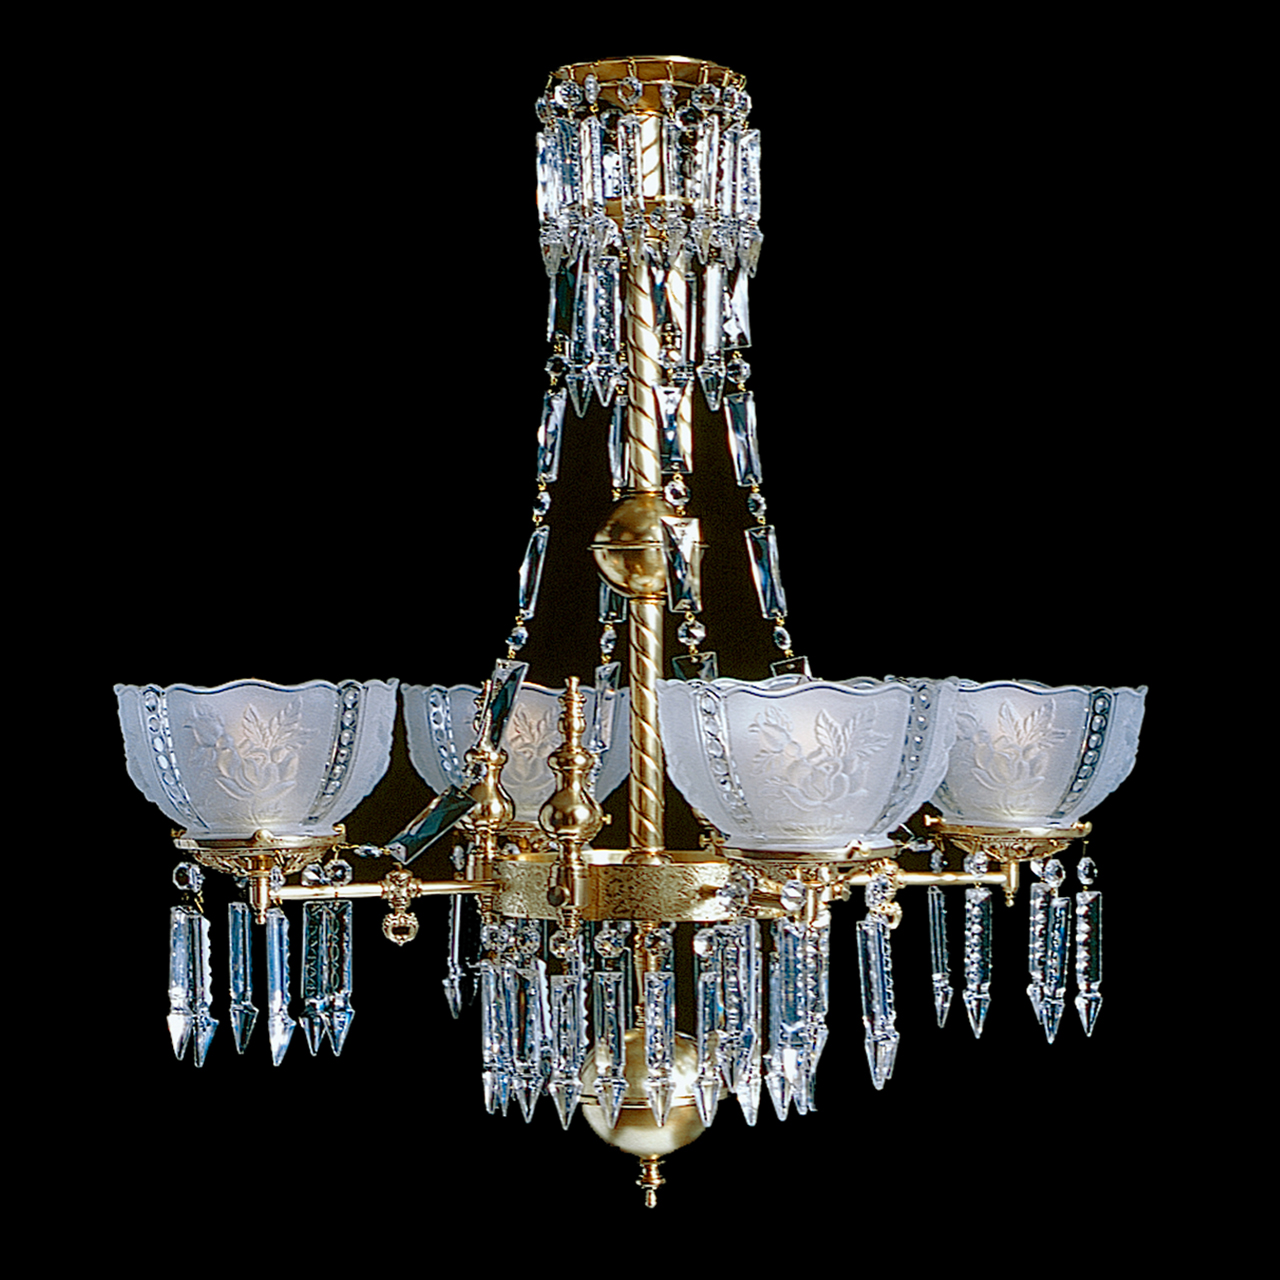 Kings chandelier co restoration design for the vintage house whitaker 4b gasolier beauregard chesapeake crystal chandeliers aloadofball Image collections